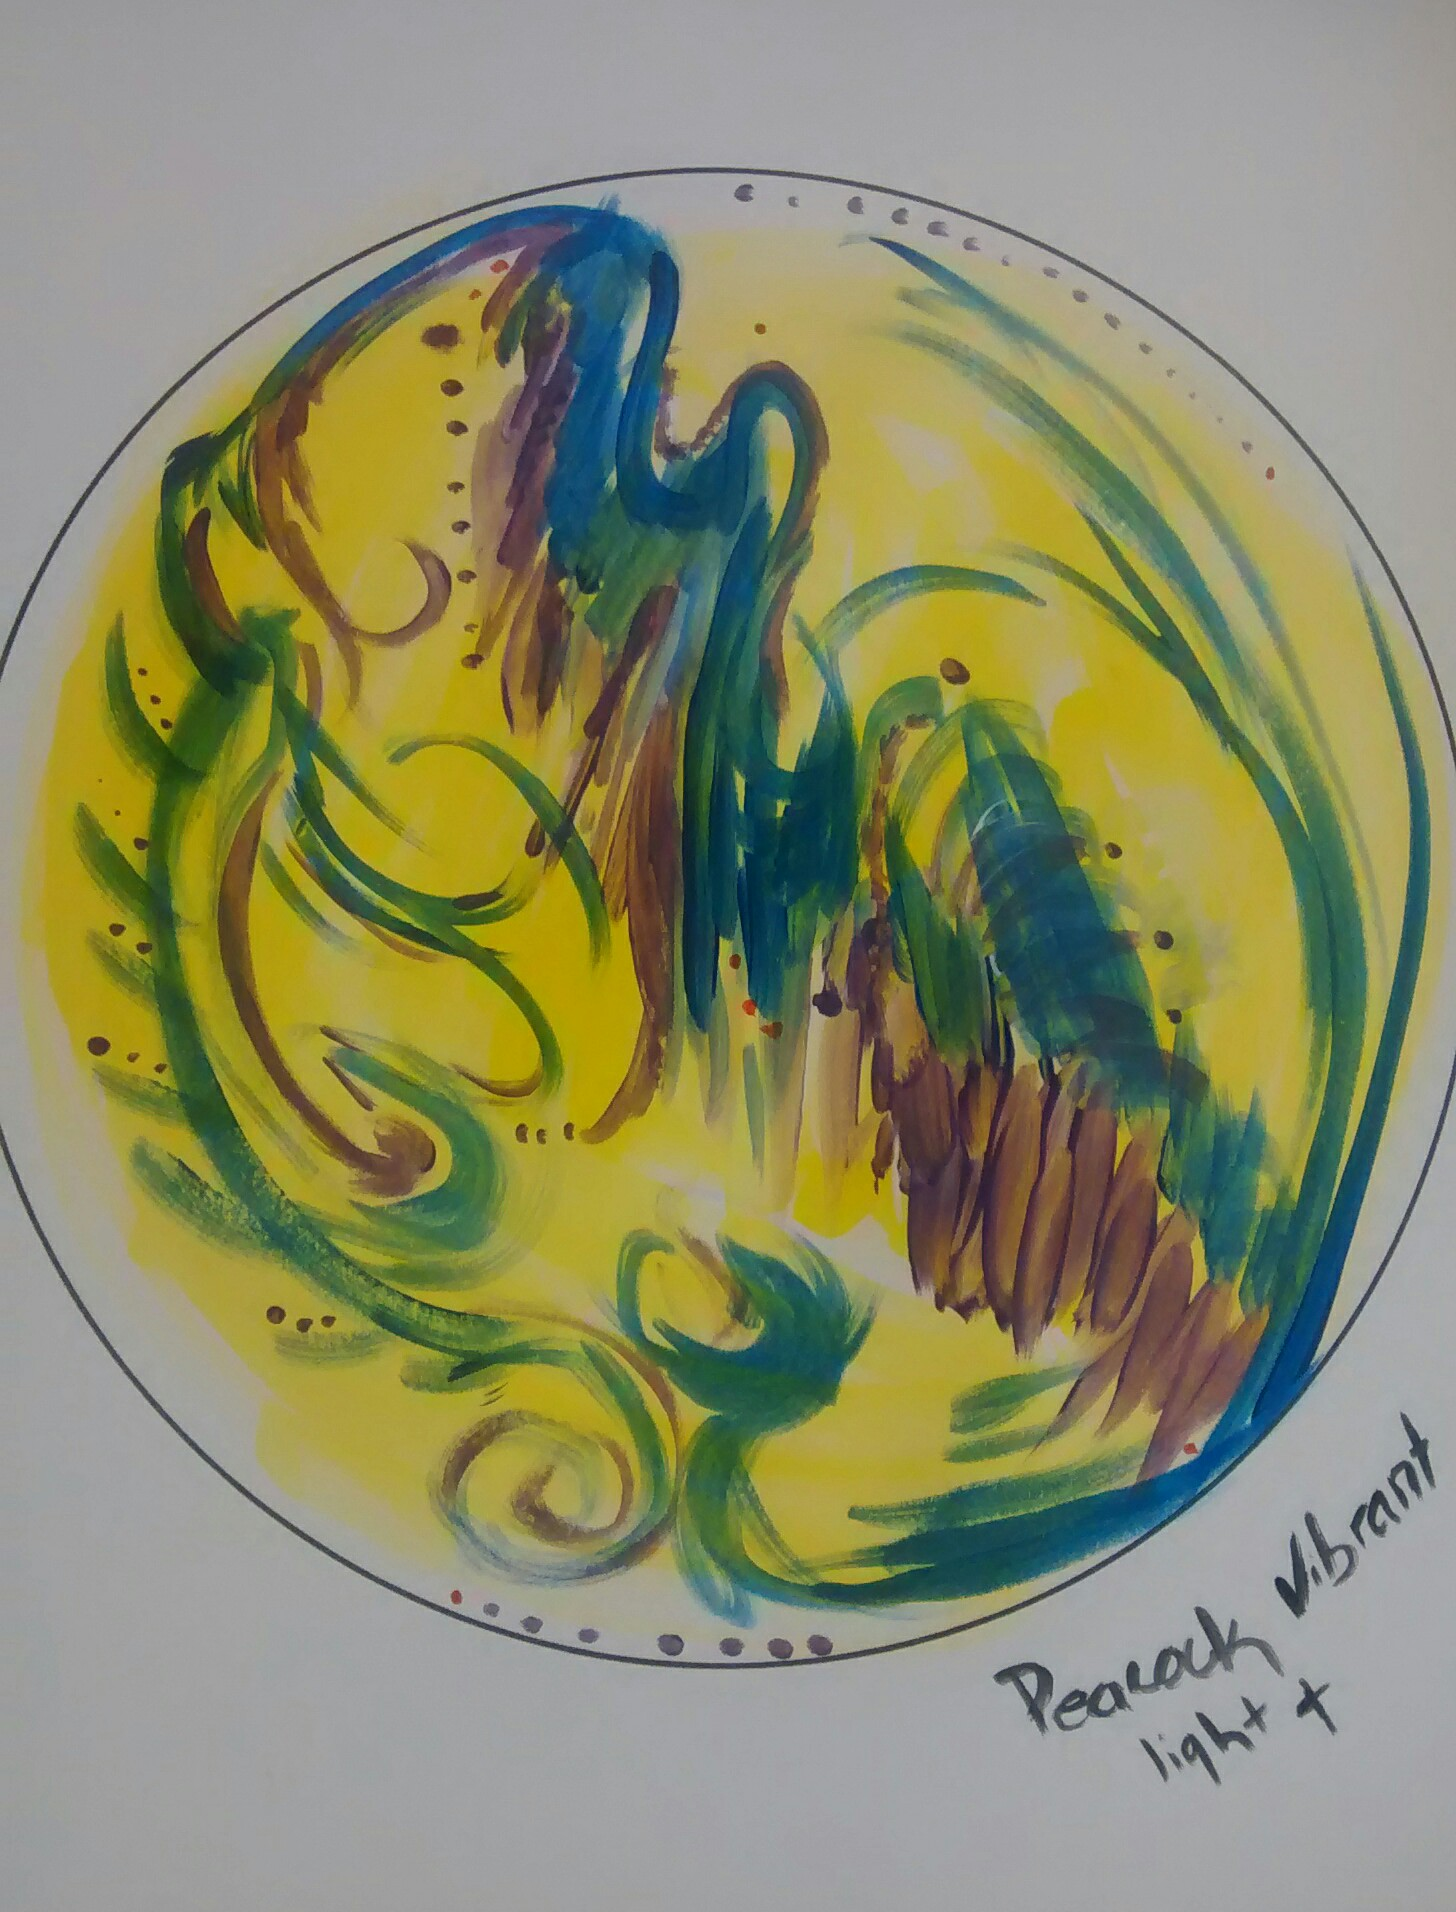 common uses of art therapy spirited away art therapy